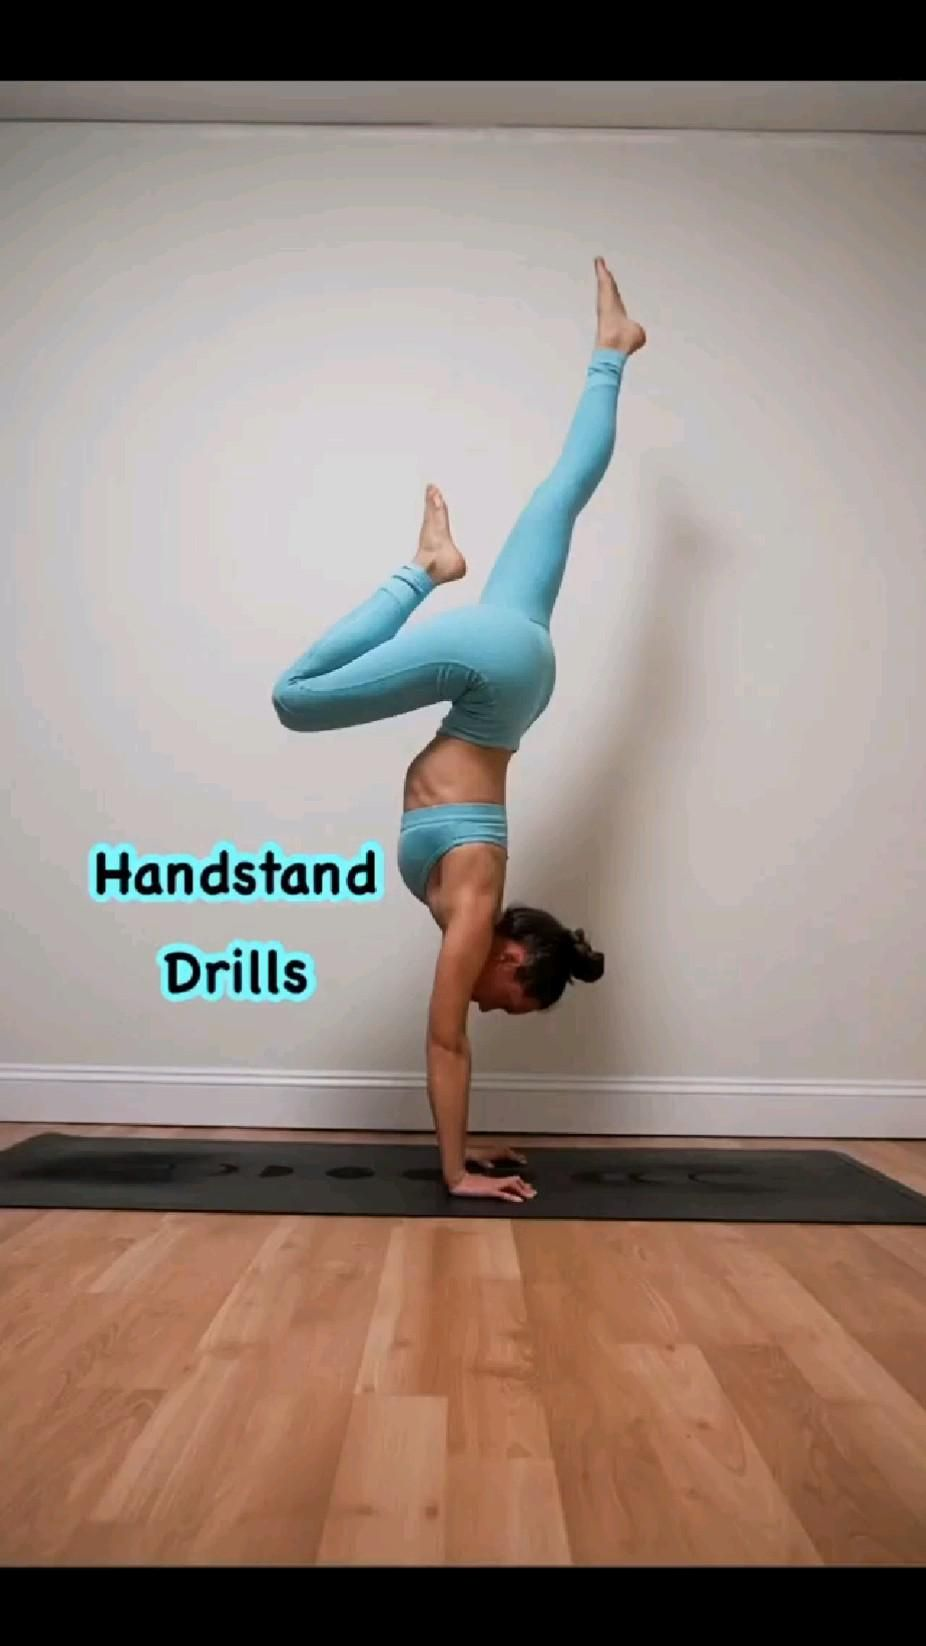 Amazing Headstand Drills to do the Yoga Pose